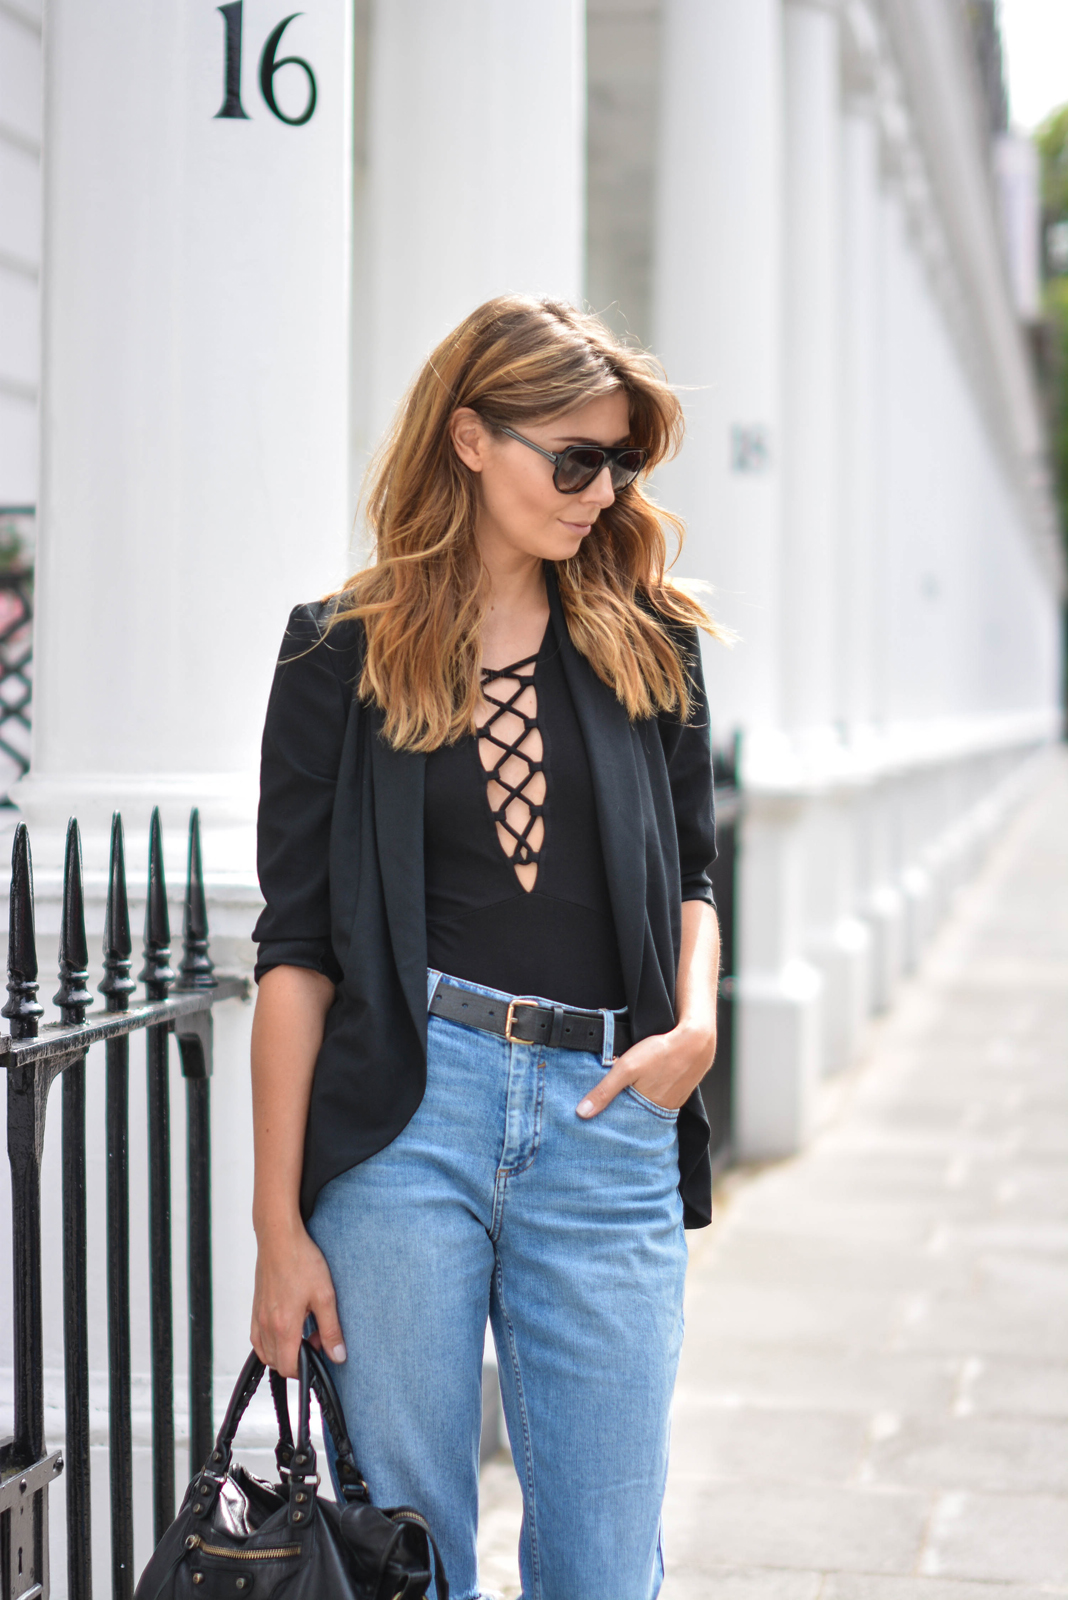 EJSTYLE wears Lace up black top, Black blazer, girlfreind jeans, black belt, Flat top square sunglasses, Balenciaga city bag black